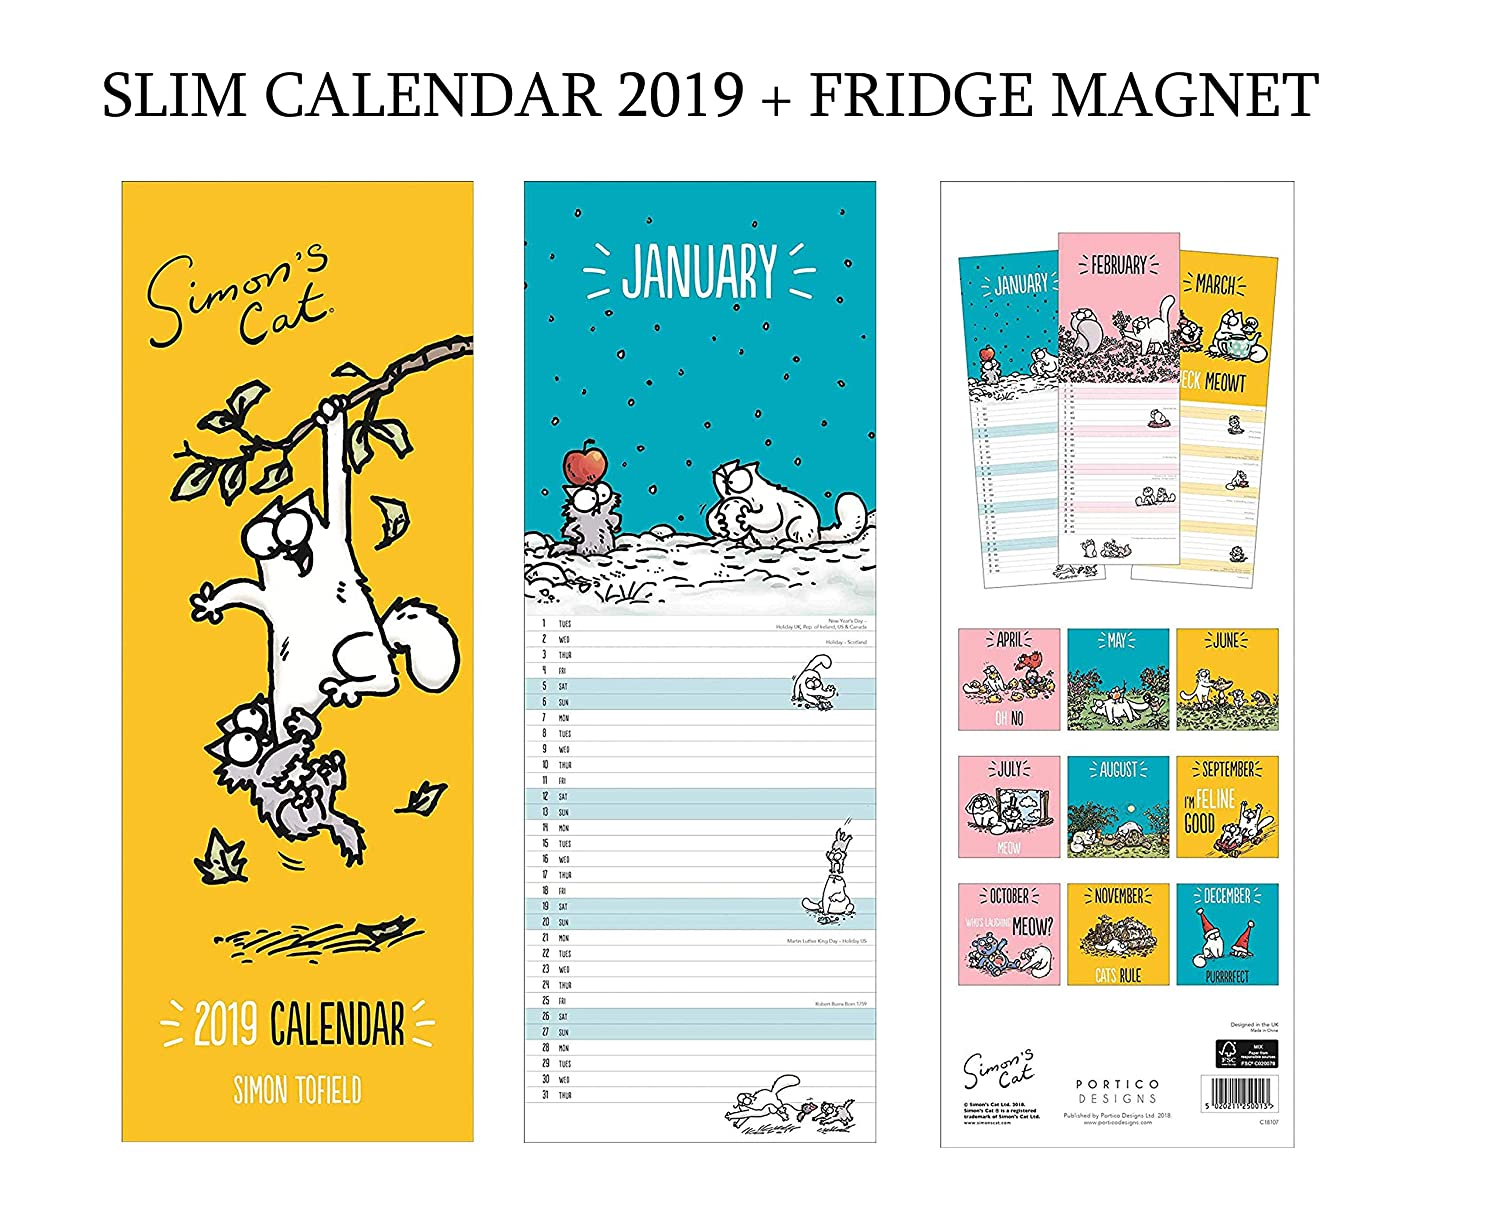 Simon s CAT - Calendario 2019 + imán para nevera en blanco ...